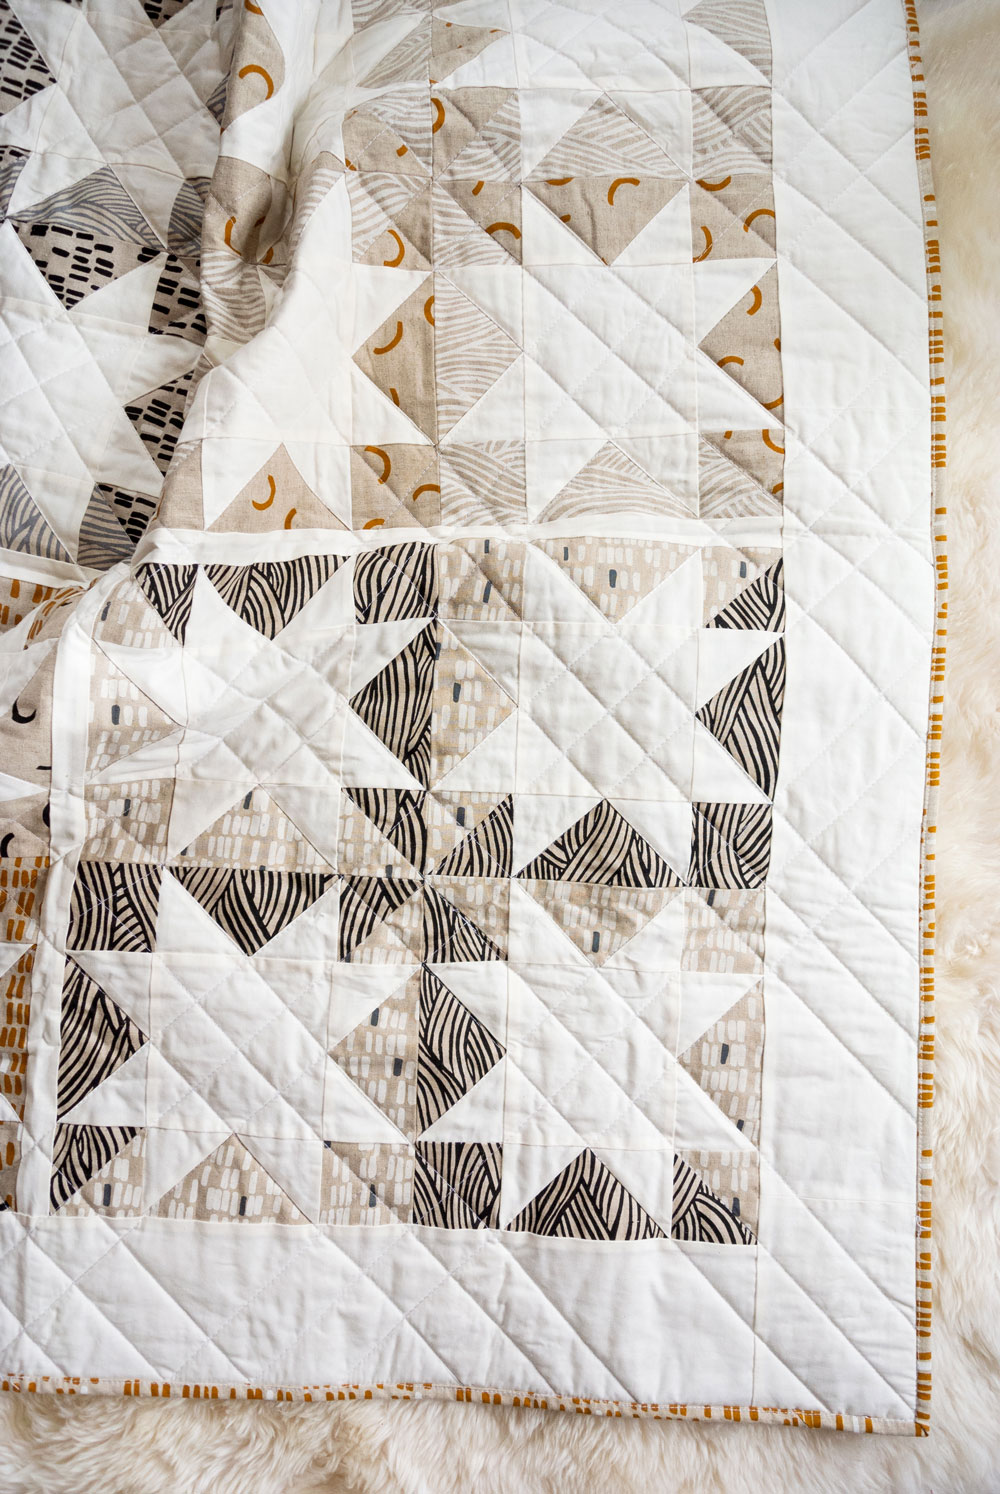 Make a sophisticated, neutral quilt using the Stars Hollow quilt pattern. This is a classic quilt pattern, but with a modern twist. The design plays on negative space to create traditional sawtooth star quilt blocks. suzyquilts.com #linen #quilting